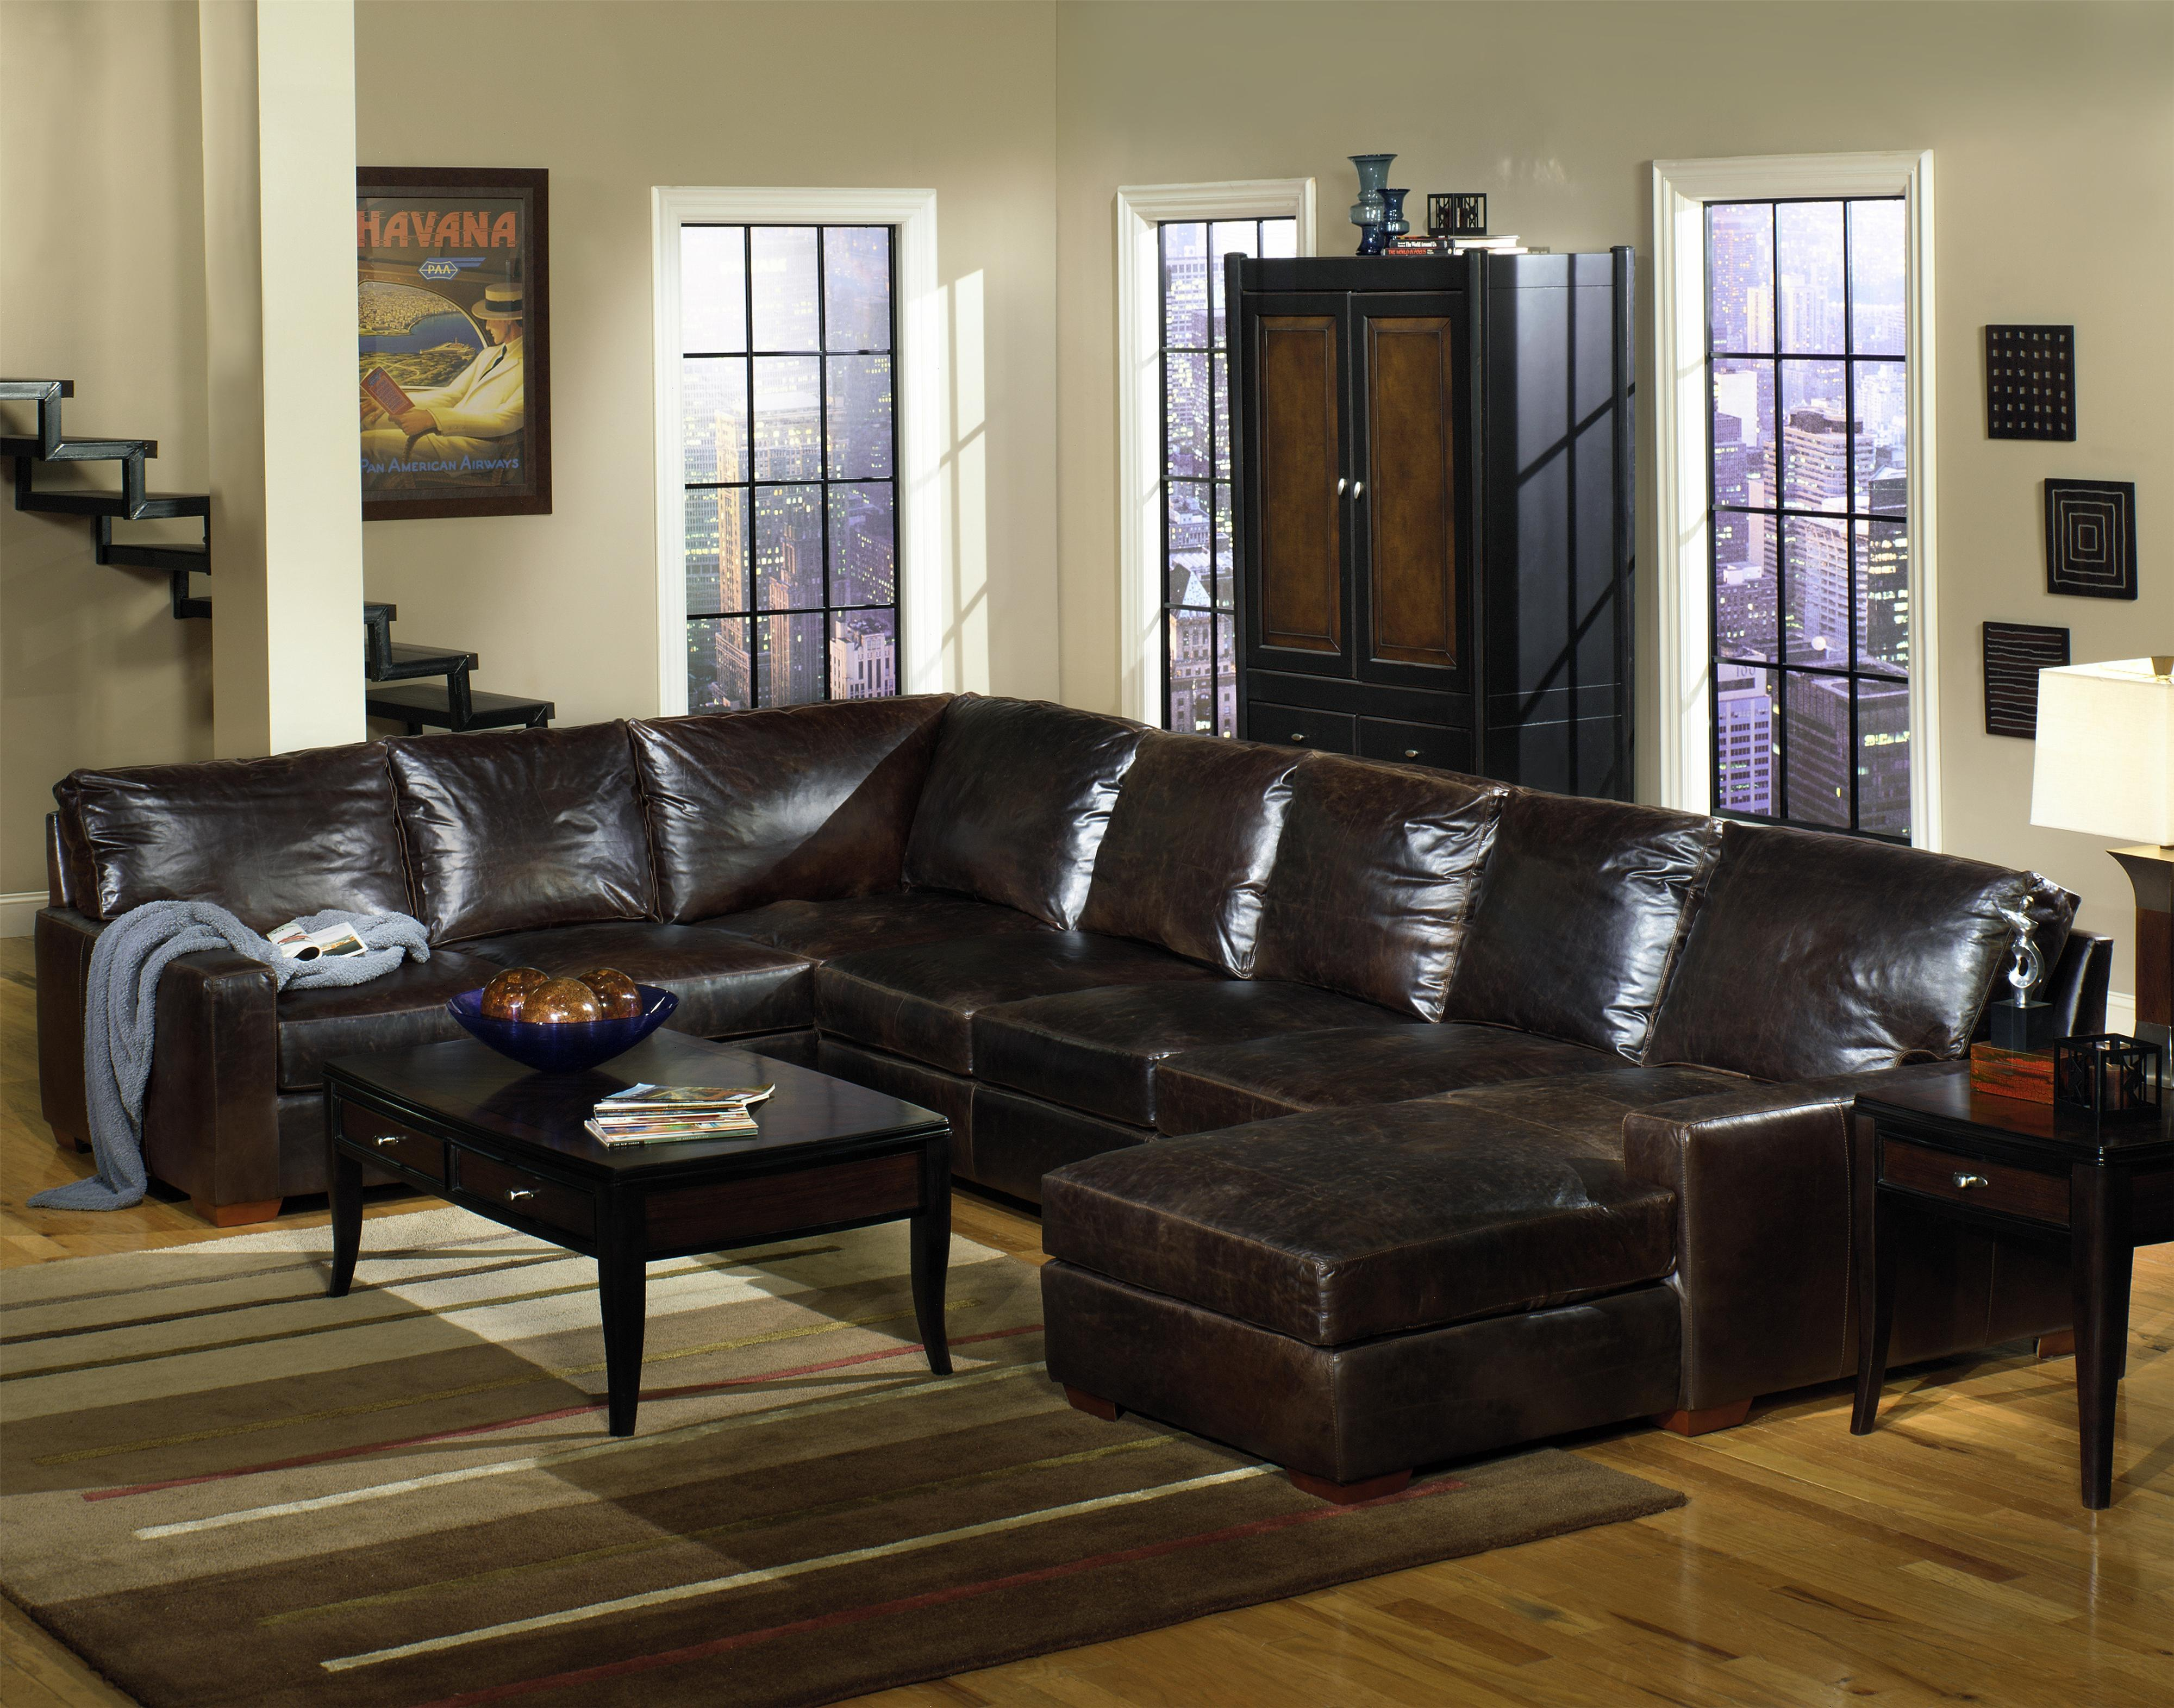 usa premium leather 9935 track arm sofa chaise sectional olinde 39 s furniture sofa sectional. Black Bedroom Furniture Sets. Home Design Ideas